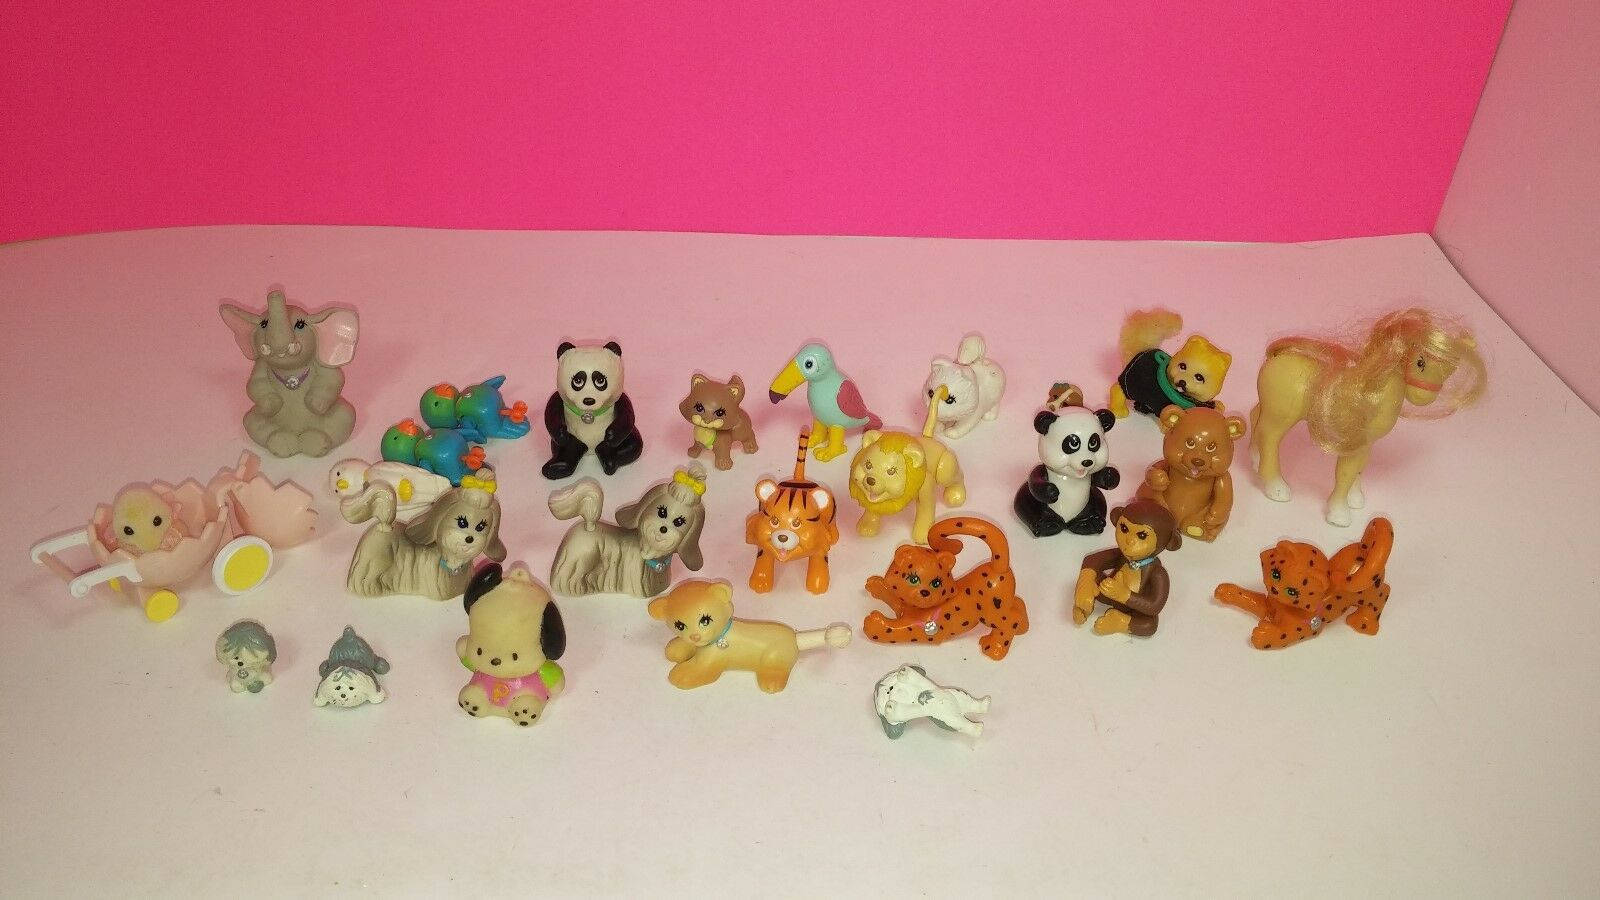 Kenner My Littlest Pet Shop Vintage Figure Lot Lot Lot Elephant Panda Zoo Animal Calico 0f22b7